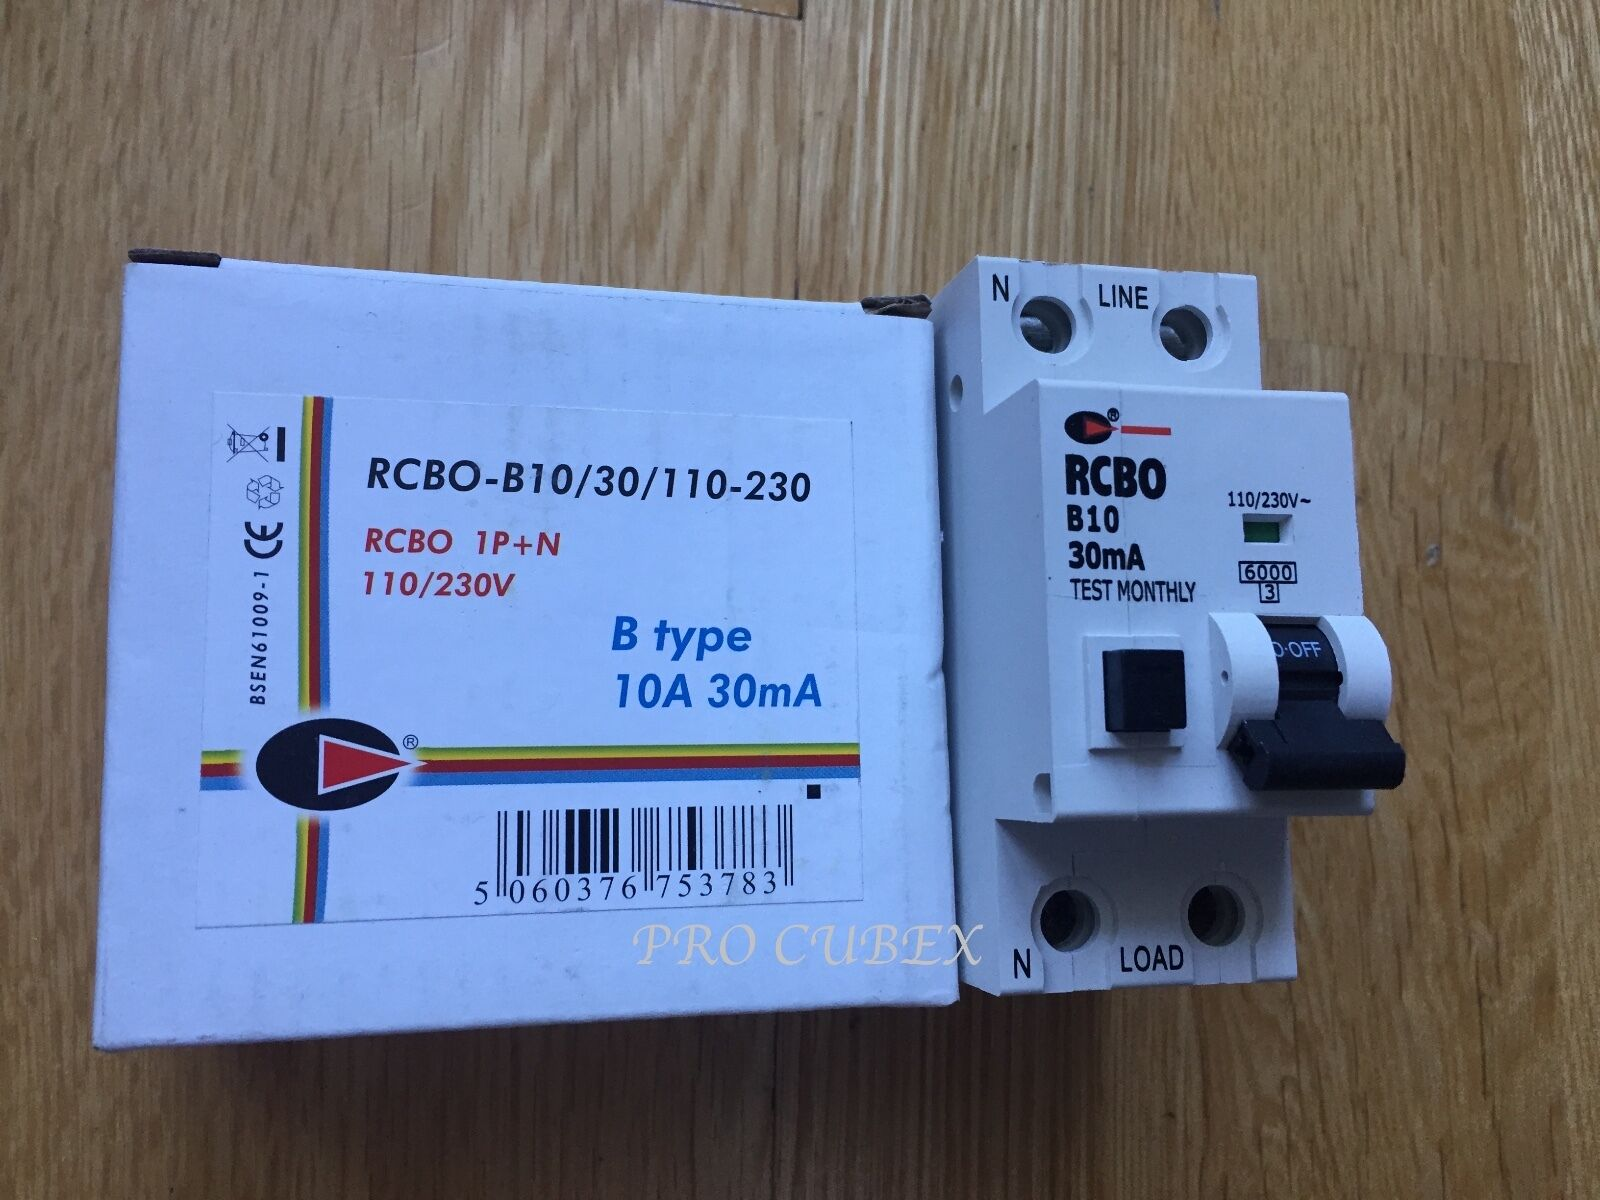 Split load consumer unit wiring j70plssd wiring schematics for hager rccb wiring diagram best wiring diagram 2017 cgd lewden 10a 30ma rcbo b10 30 110 230 rcd rccb 2 hager rccb wiring diagram split load consumer unit asfbconference2016 Image collections